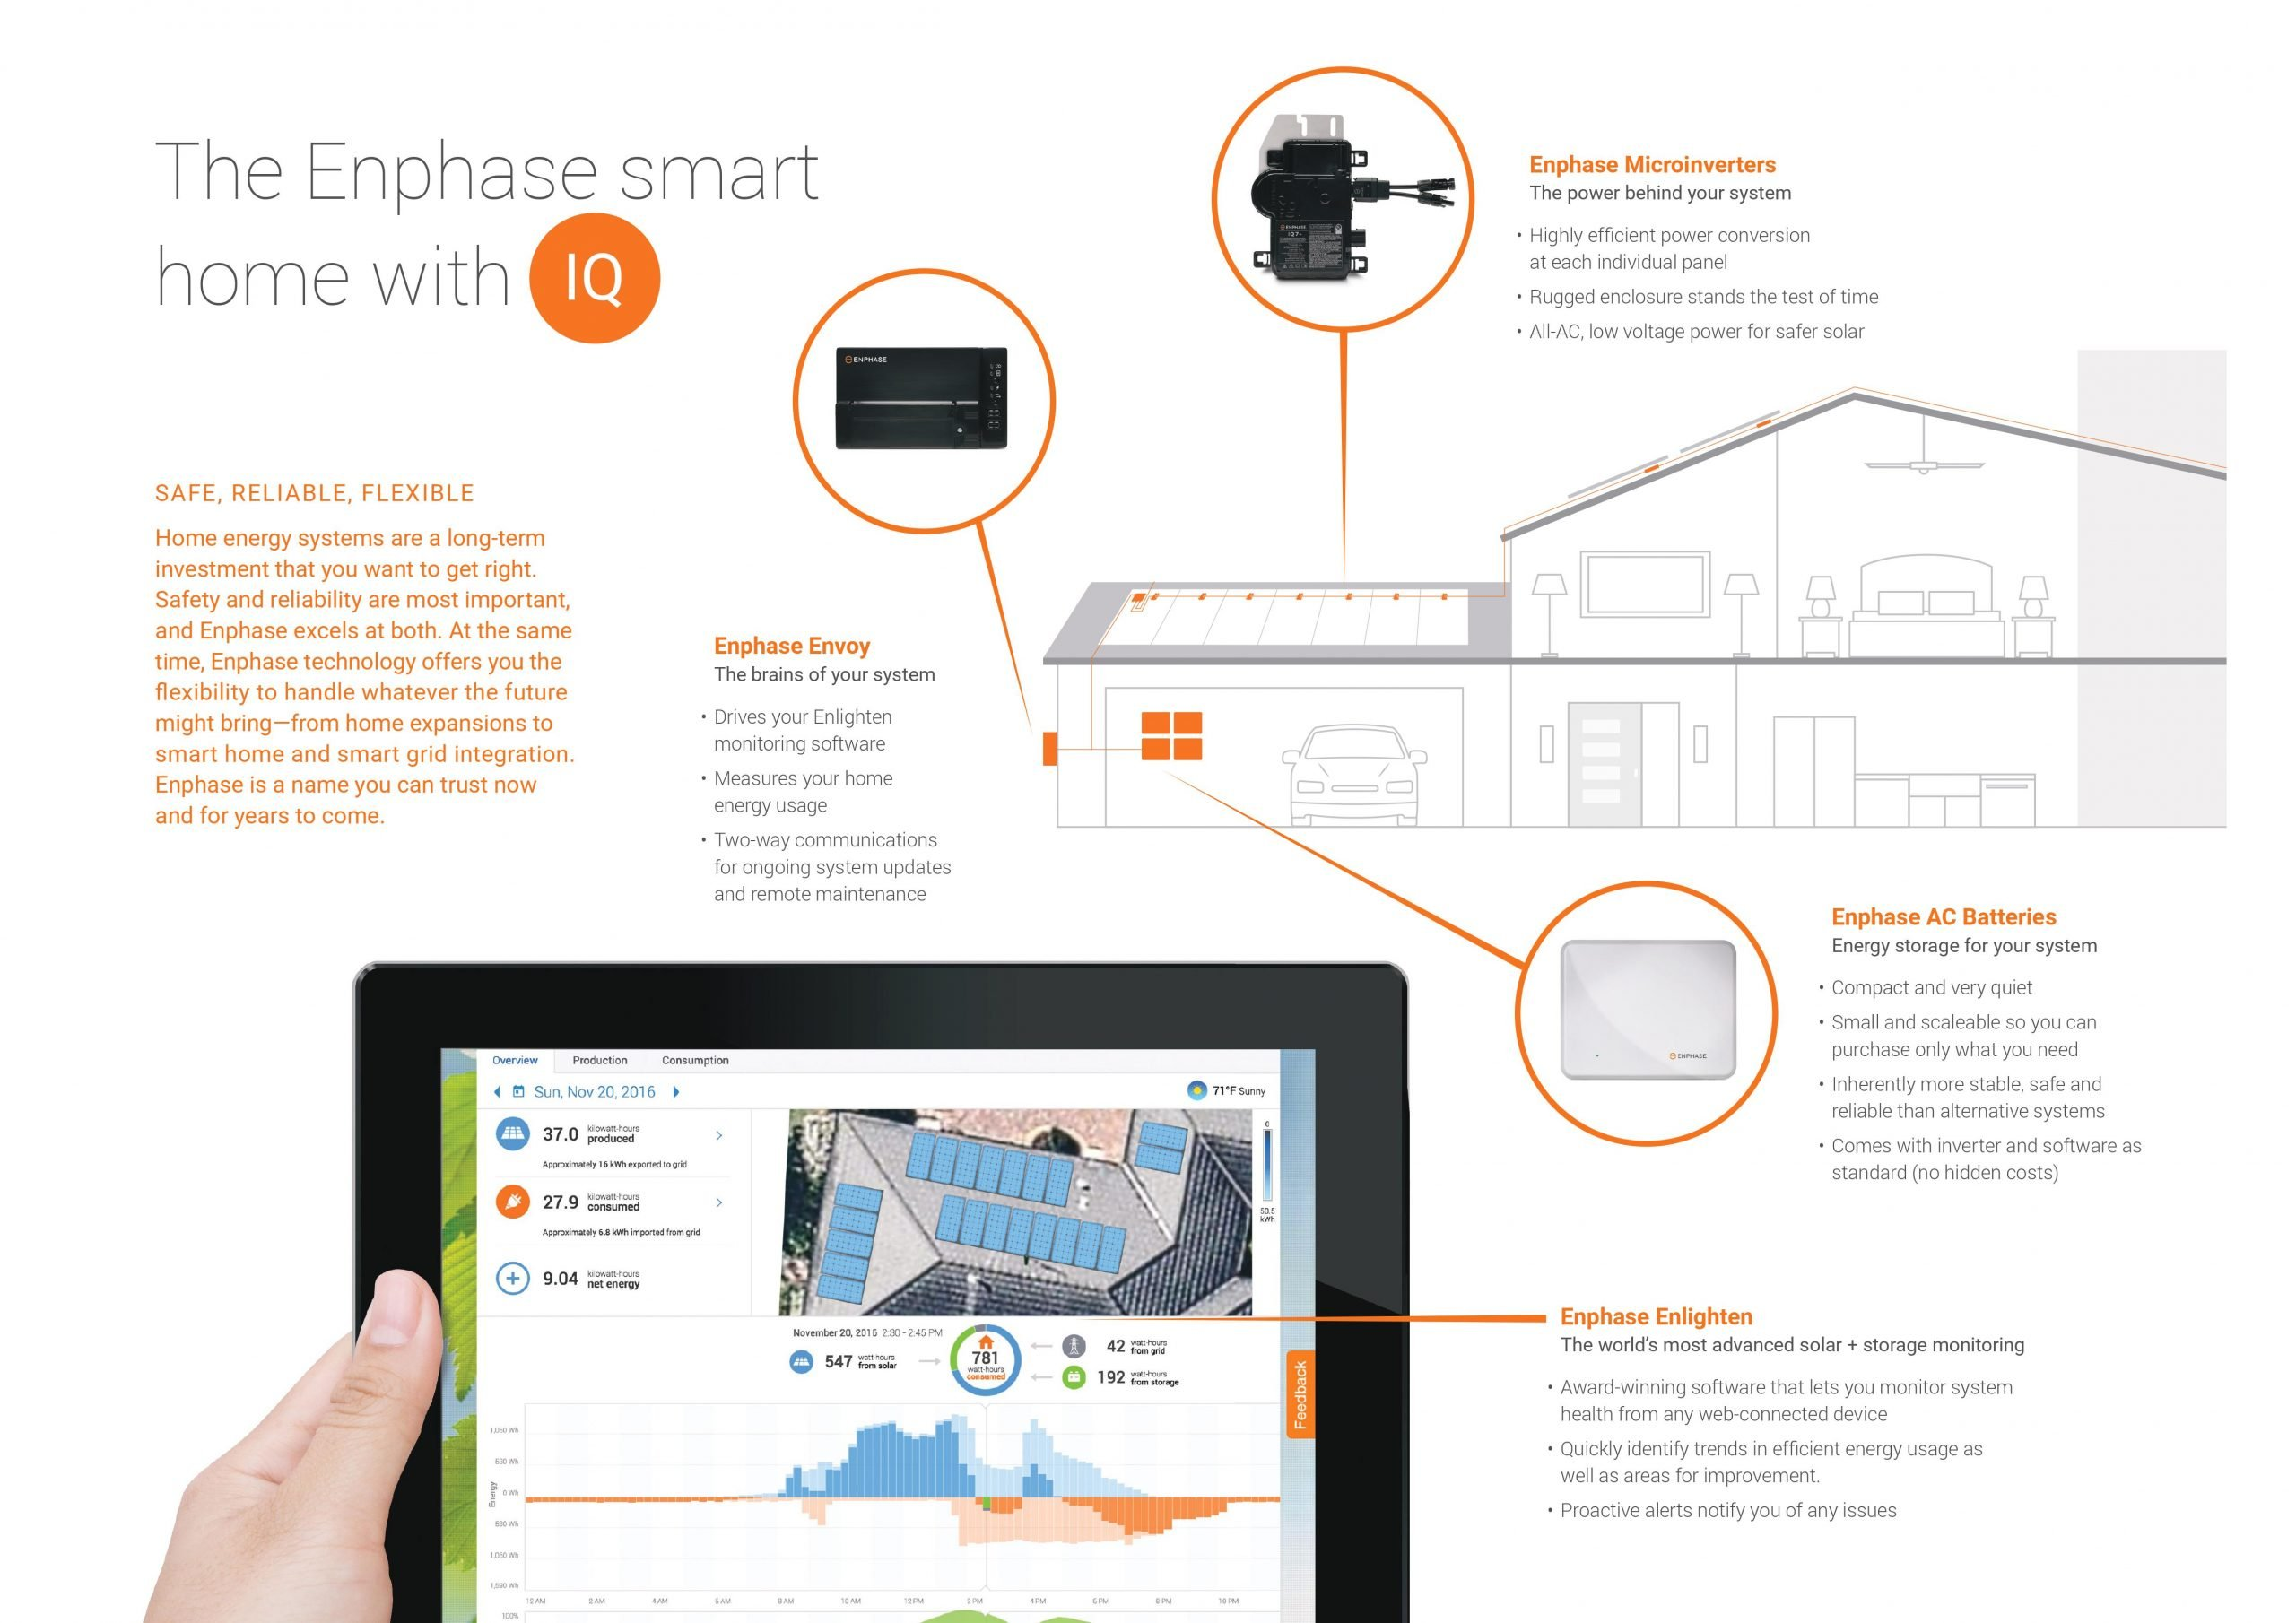 Enphase smart home with IQ